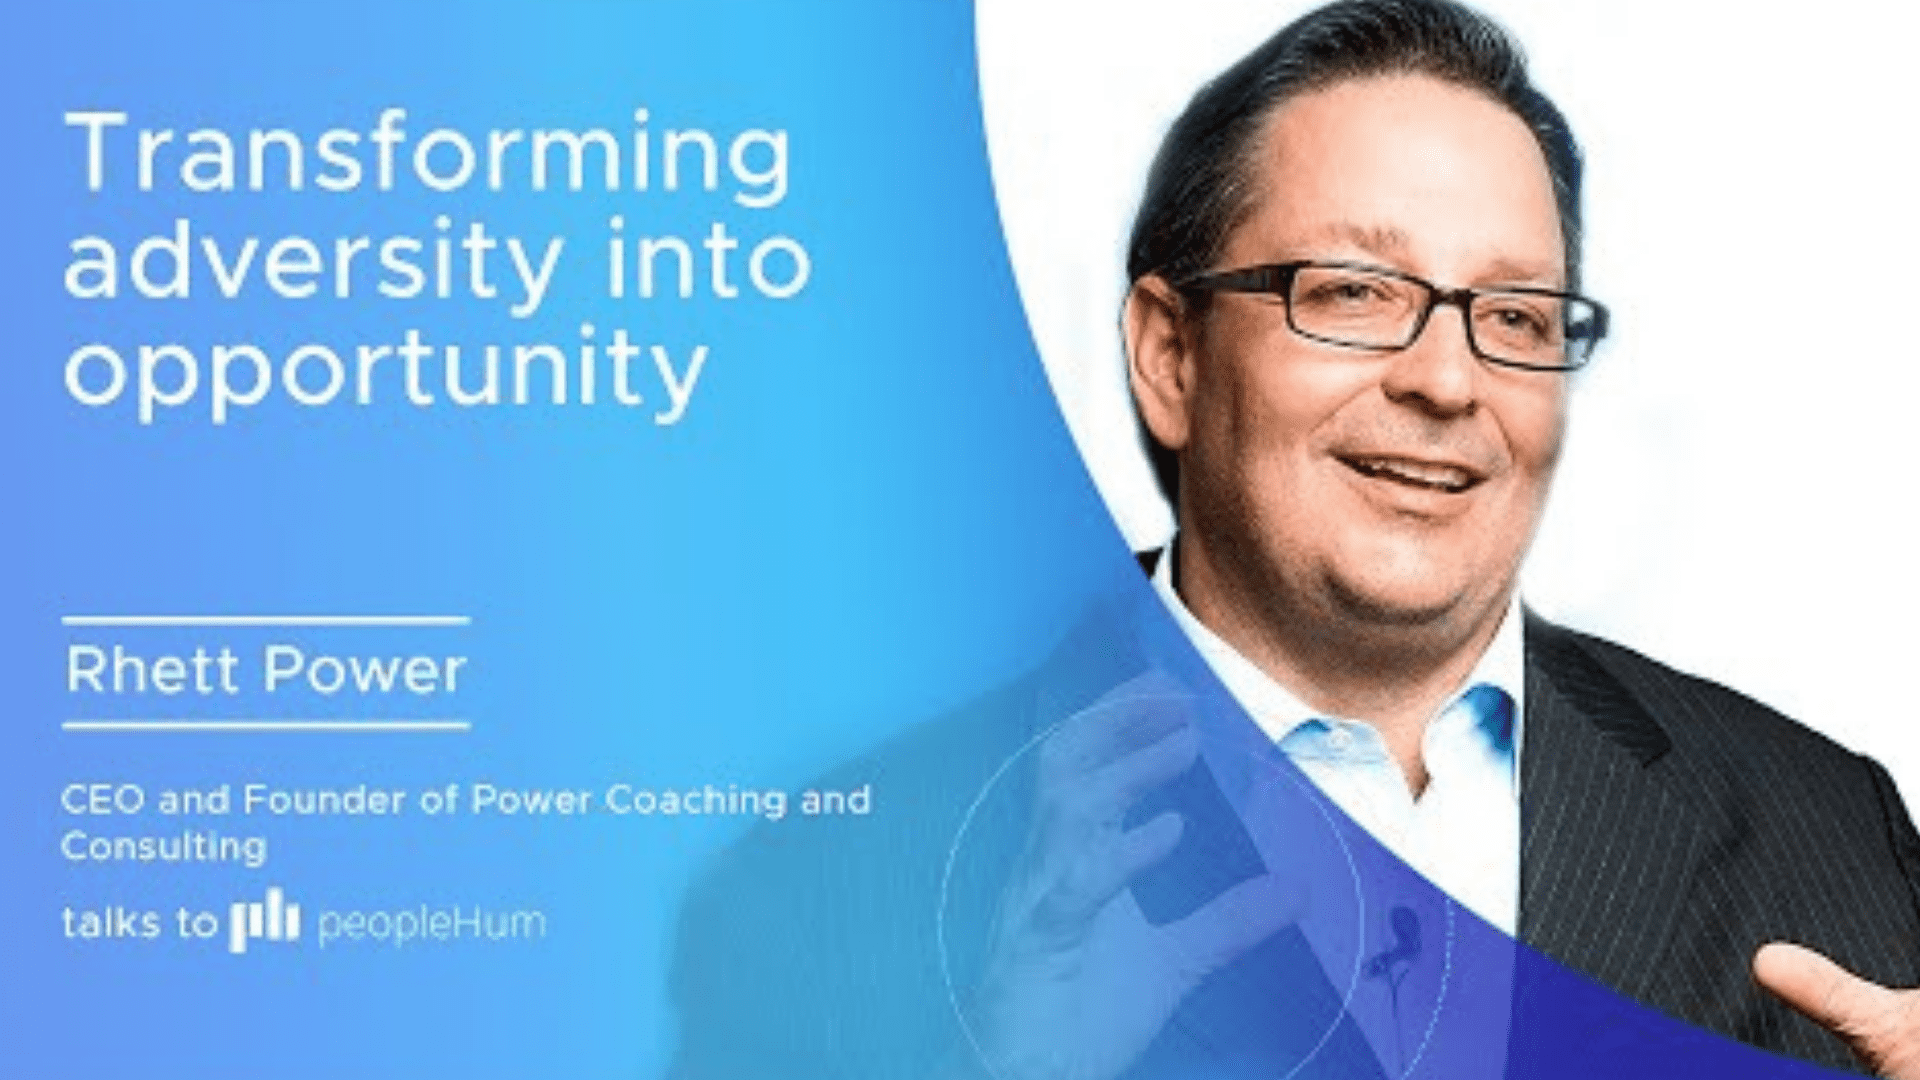 Transforming adversity into opportunity - Rhett Power [Interview]